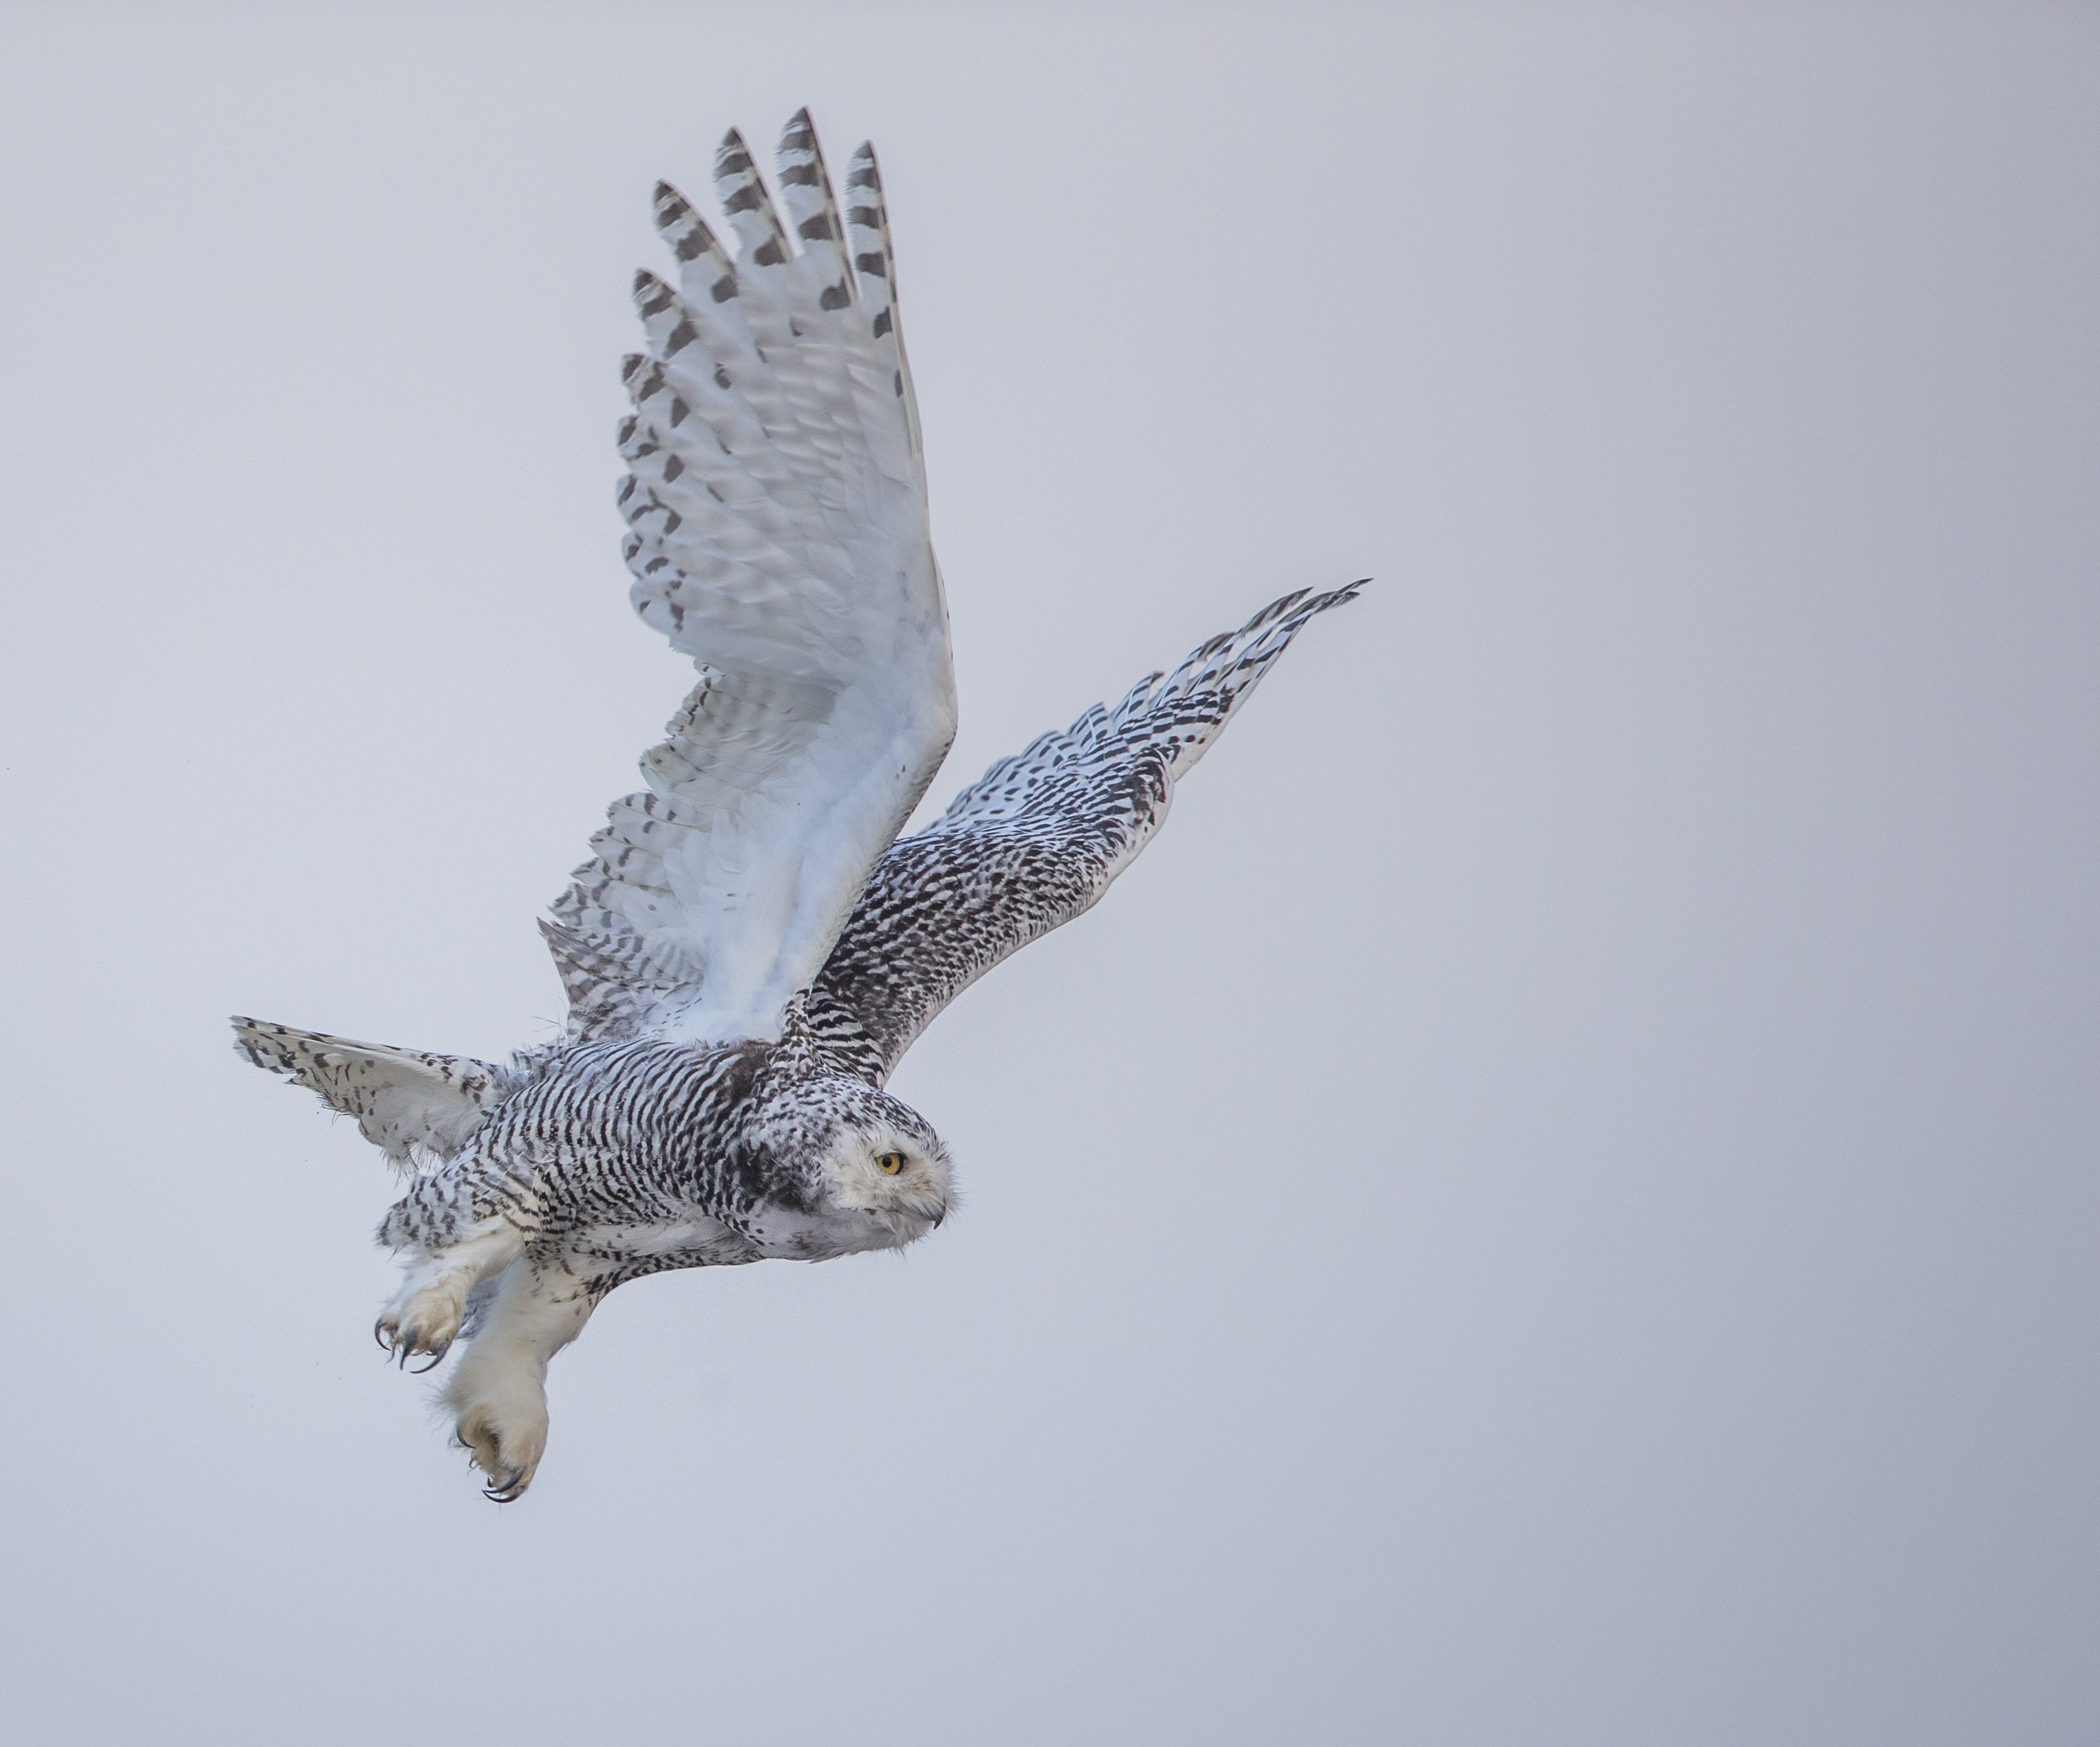 Stalking snowy owls — and the mystery of their wintertime migration